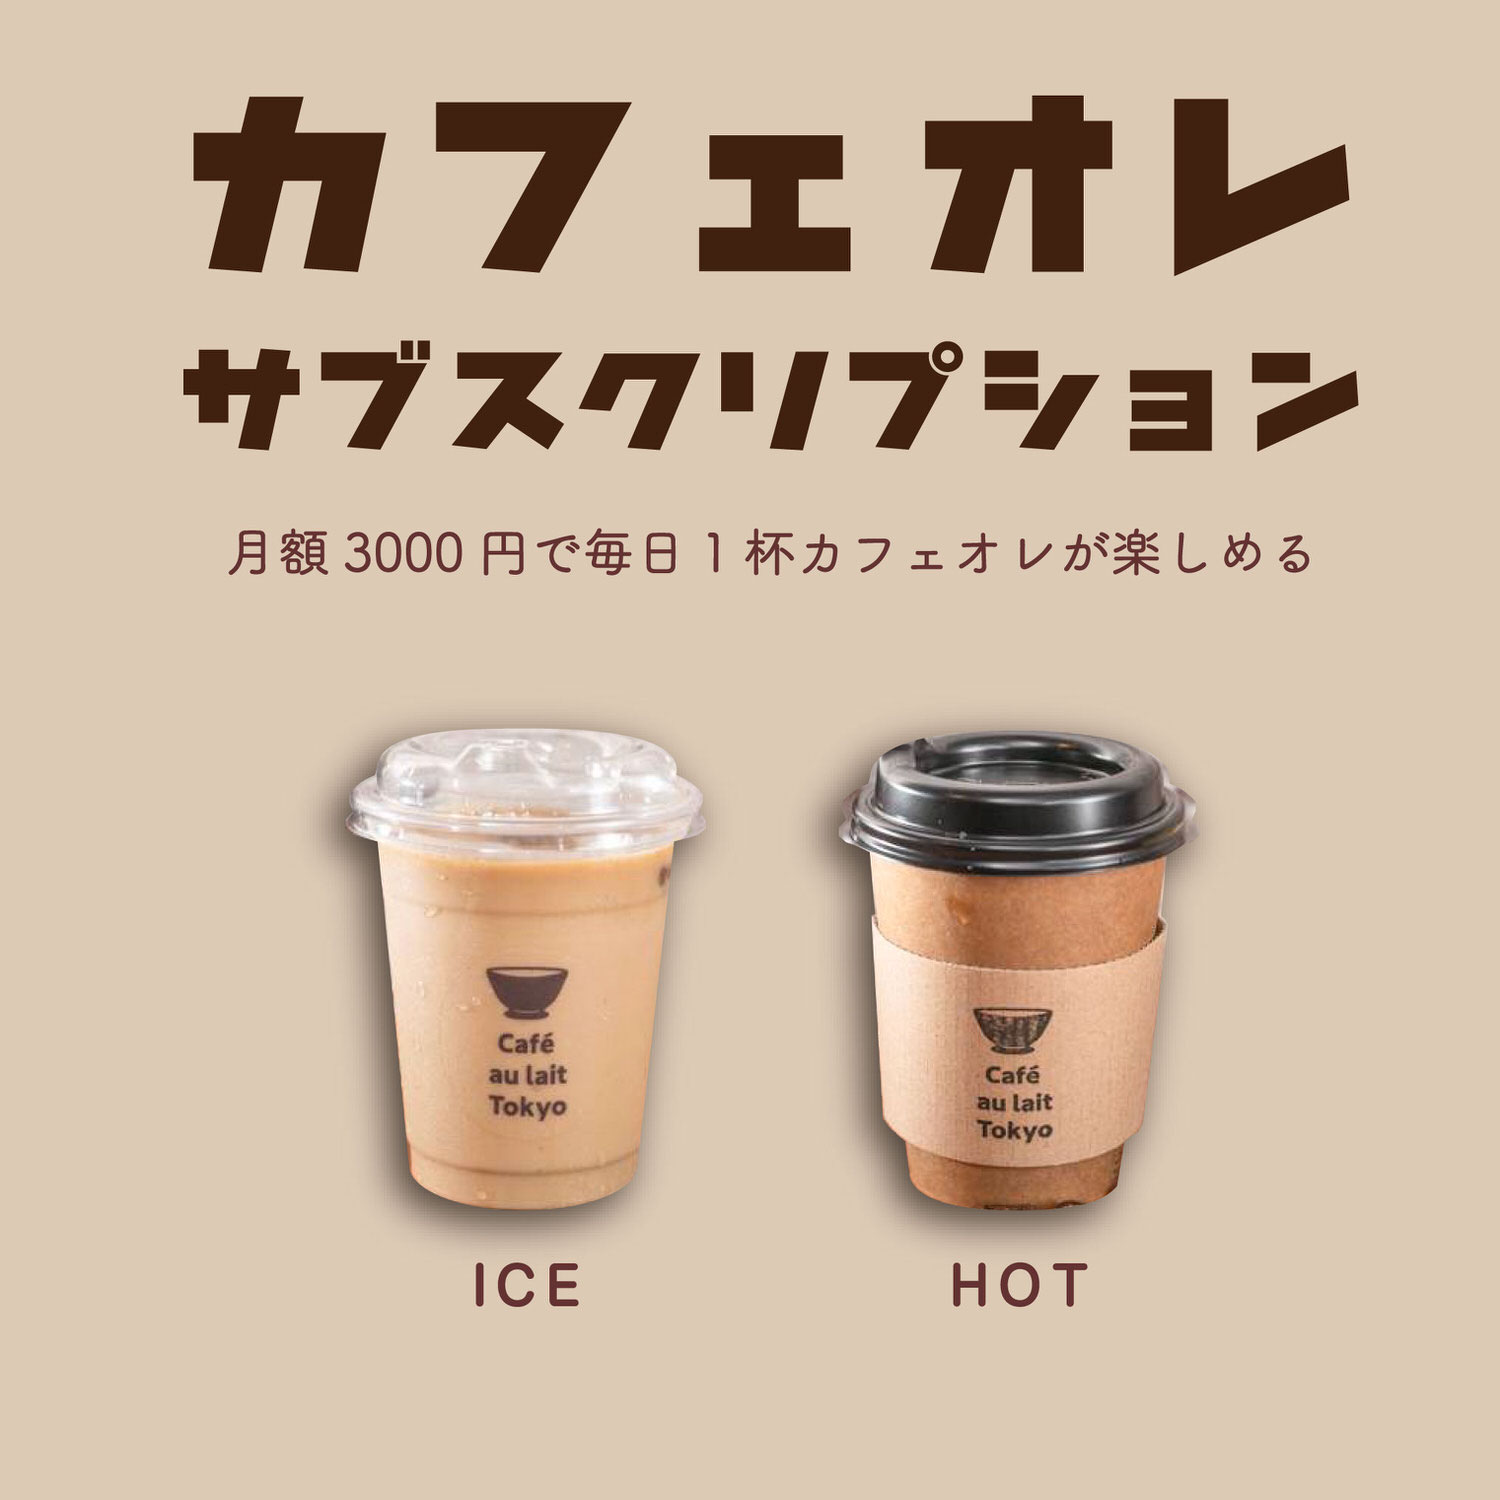 Coffee subsc 01 04